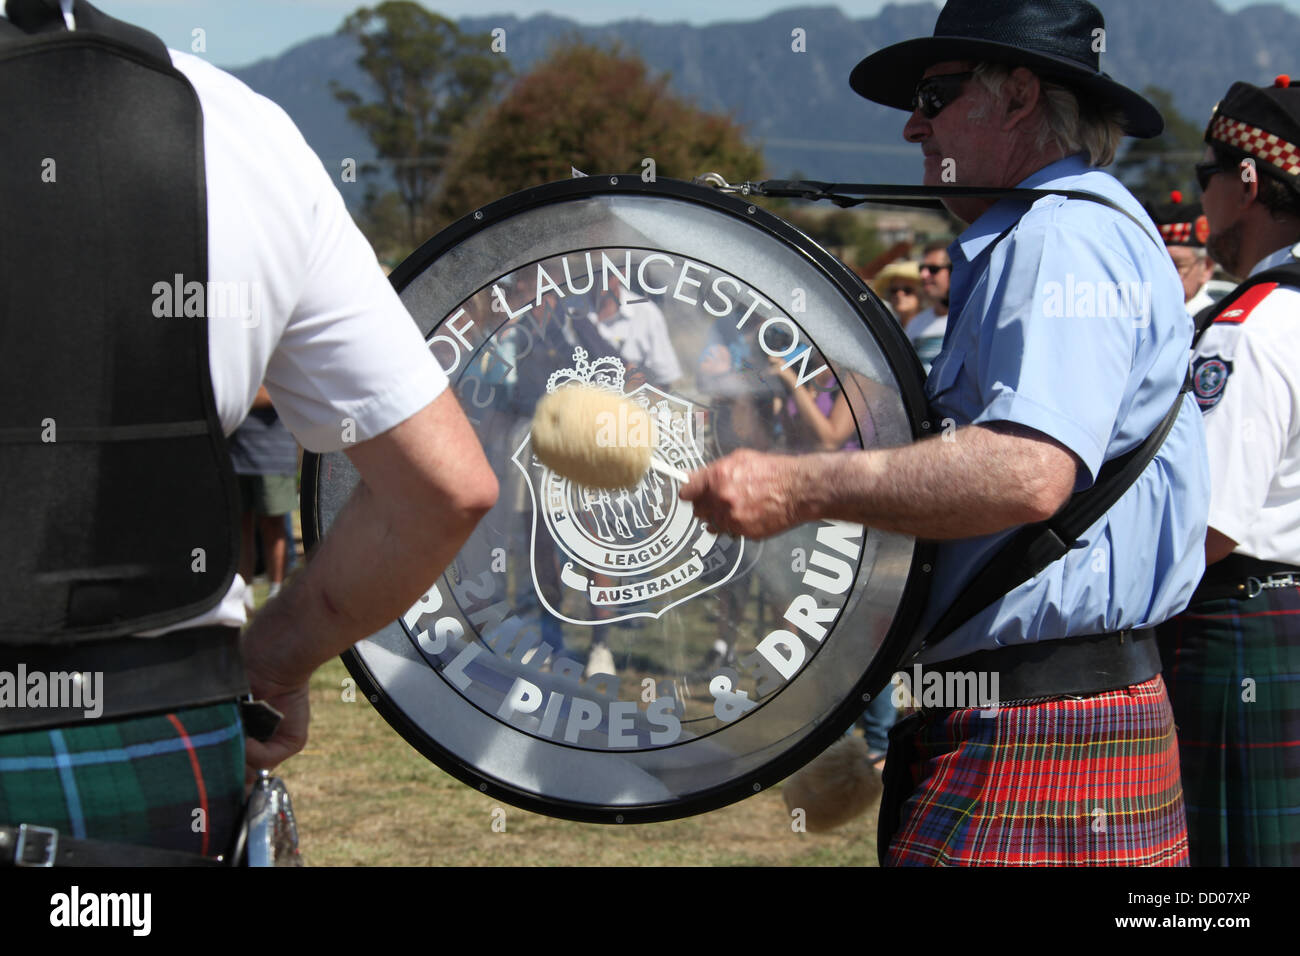 City of Launceston RSL Pipes and Drums Band playing at the annual rural show in Sheffield - Stock Image